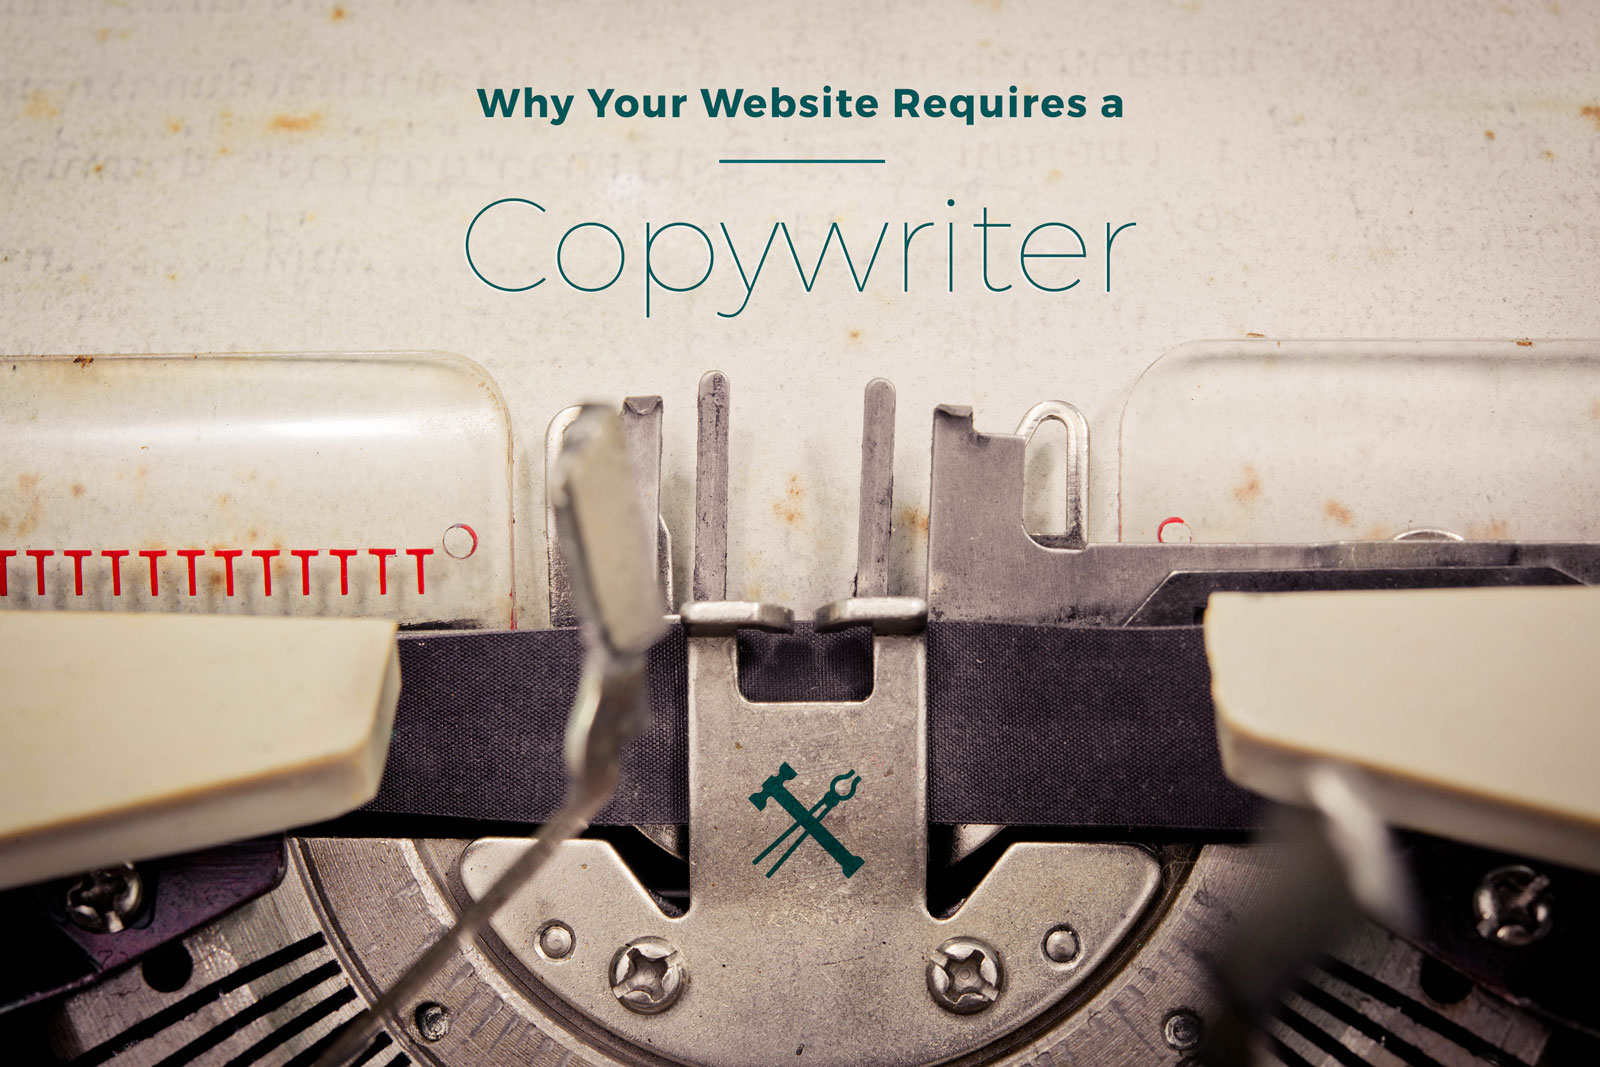 3 Tips To Keep Your Copywriting Fresh And Your Ego Under Control